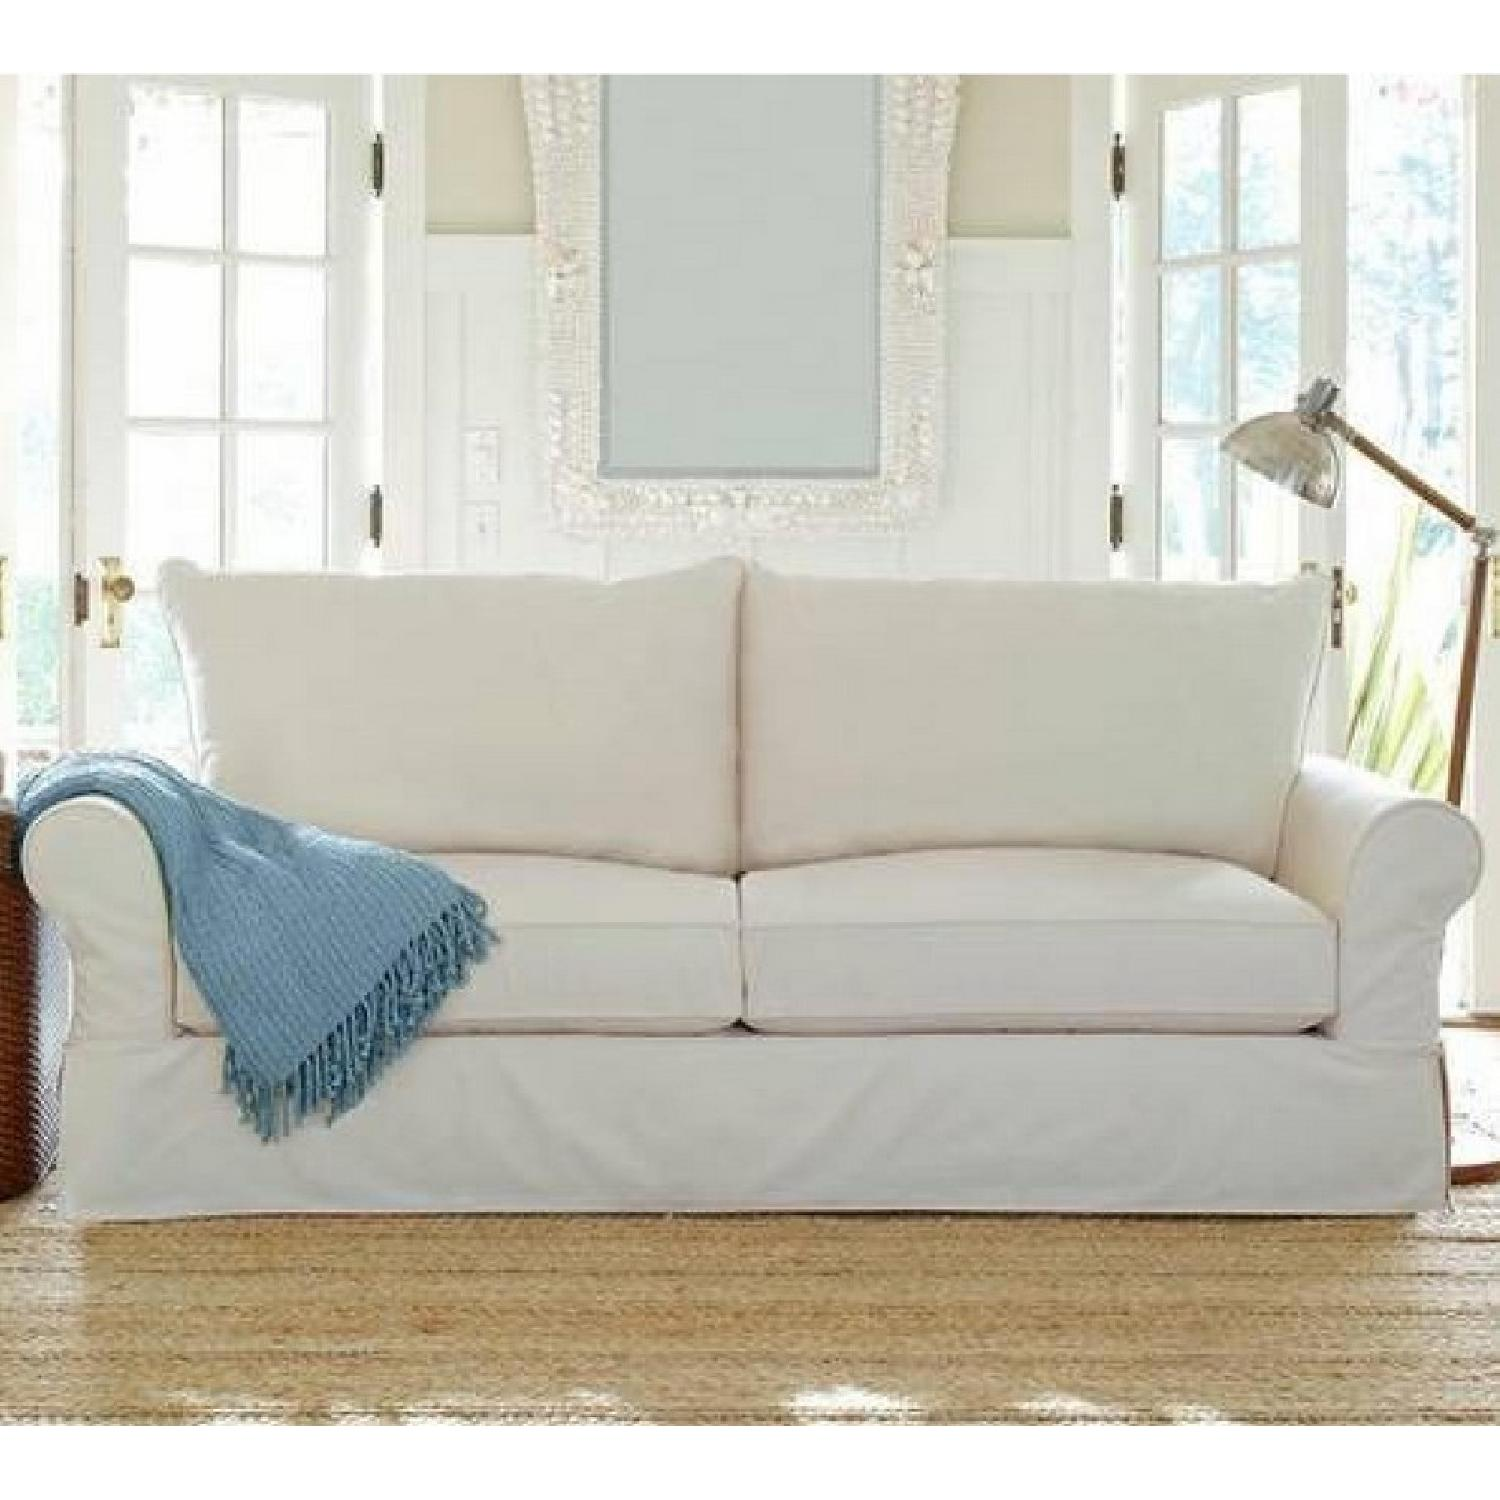 Pottery Barn Slipcovers: Used Sleeper Sofas For Sale In NYC